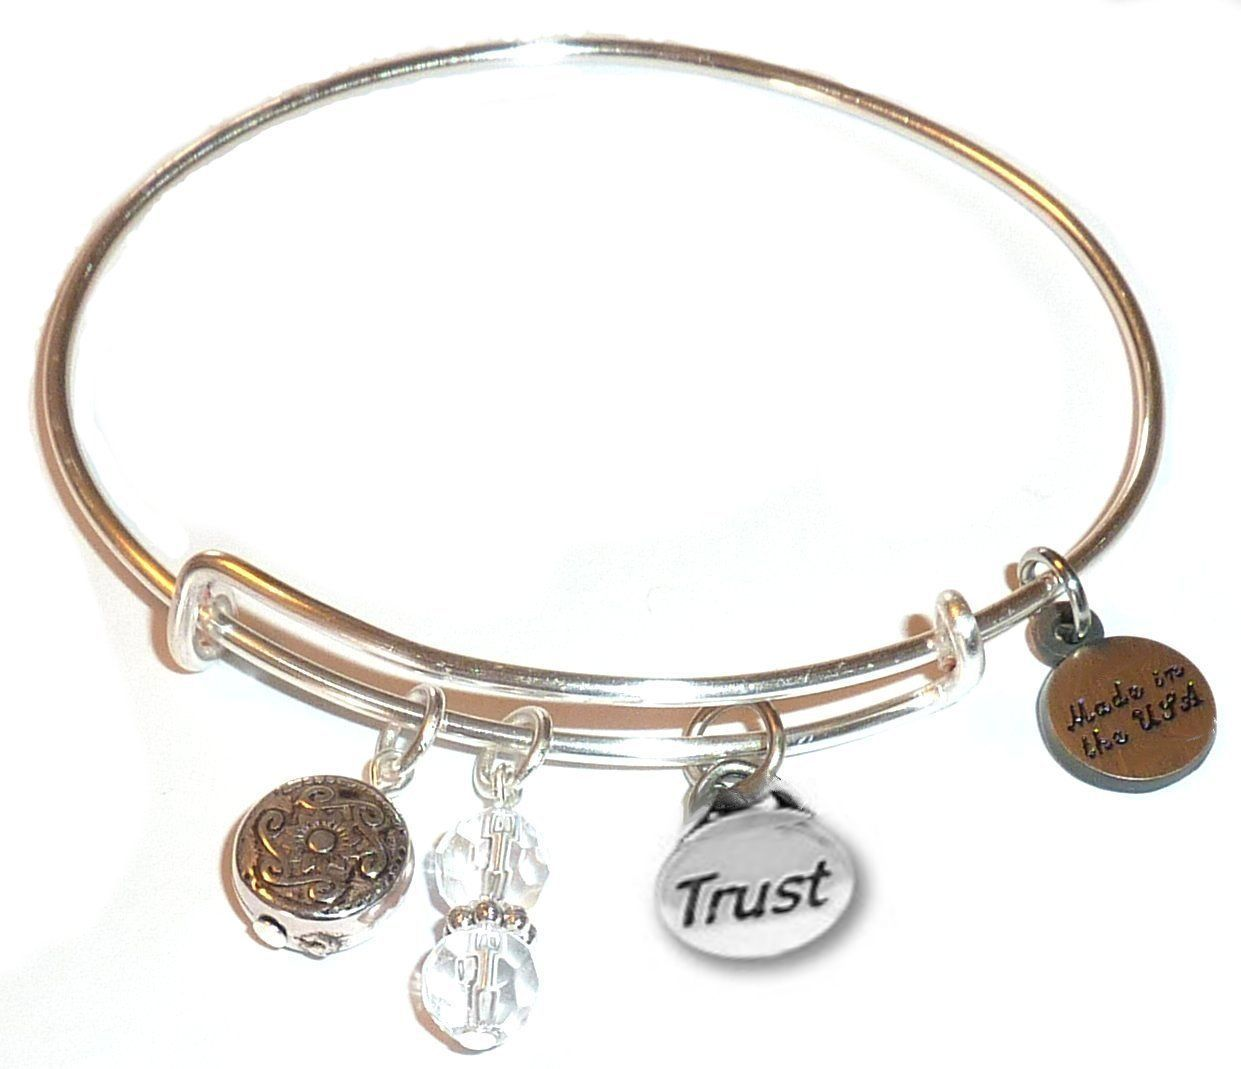 gift ideas for nurses - bangle bracelet trust